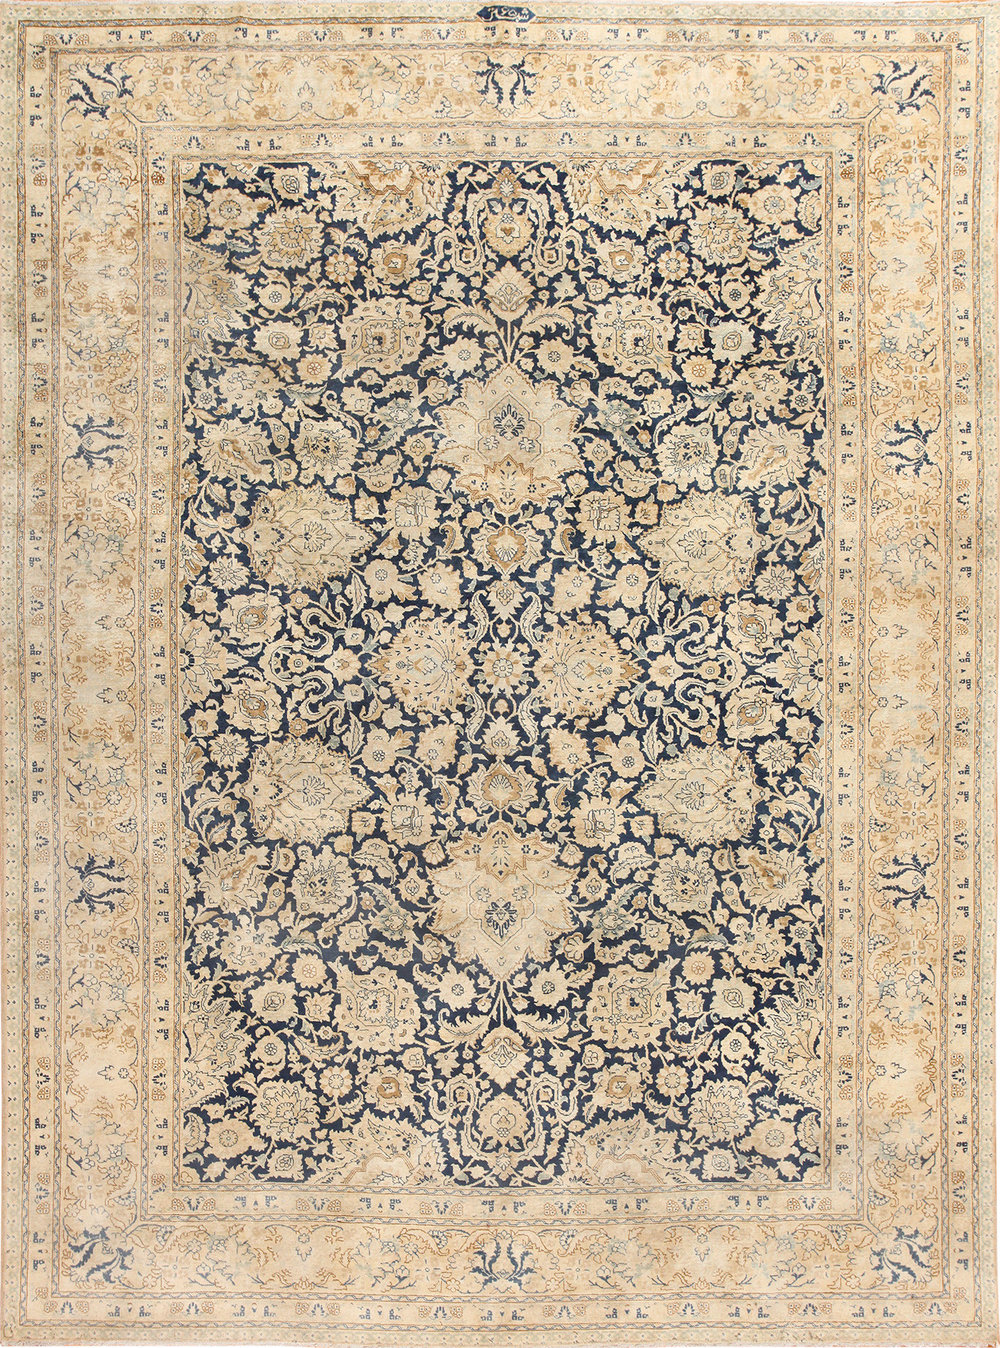 beautiful-ornate-antique-persian-tabriz-rug-48638-detail.jpg